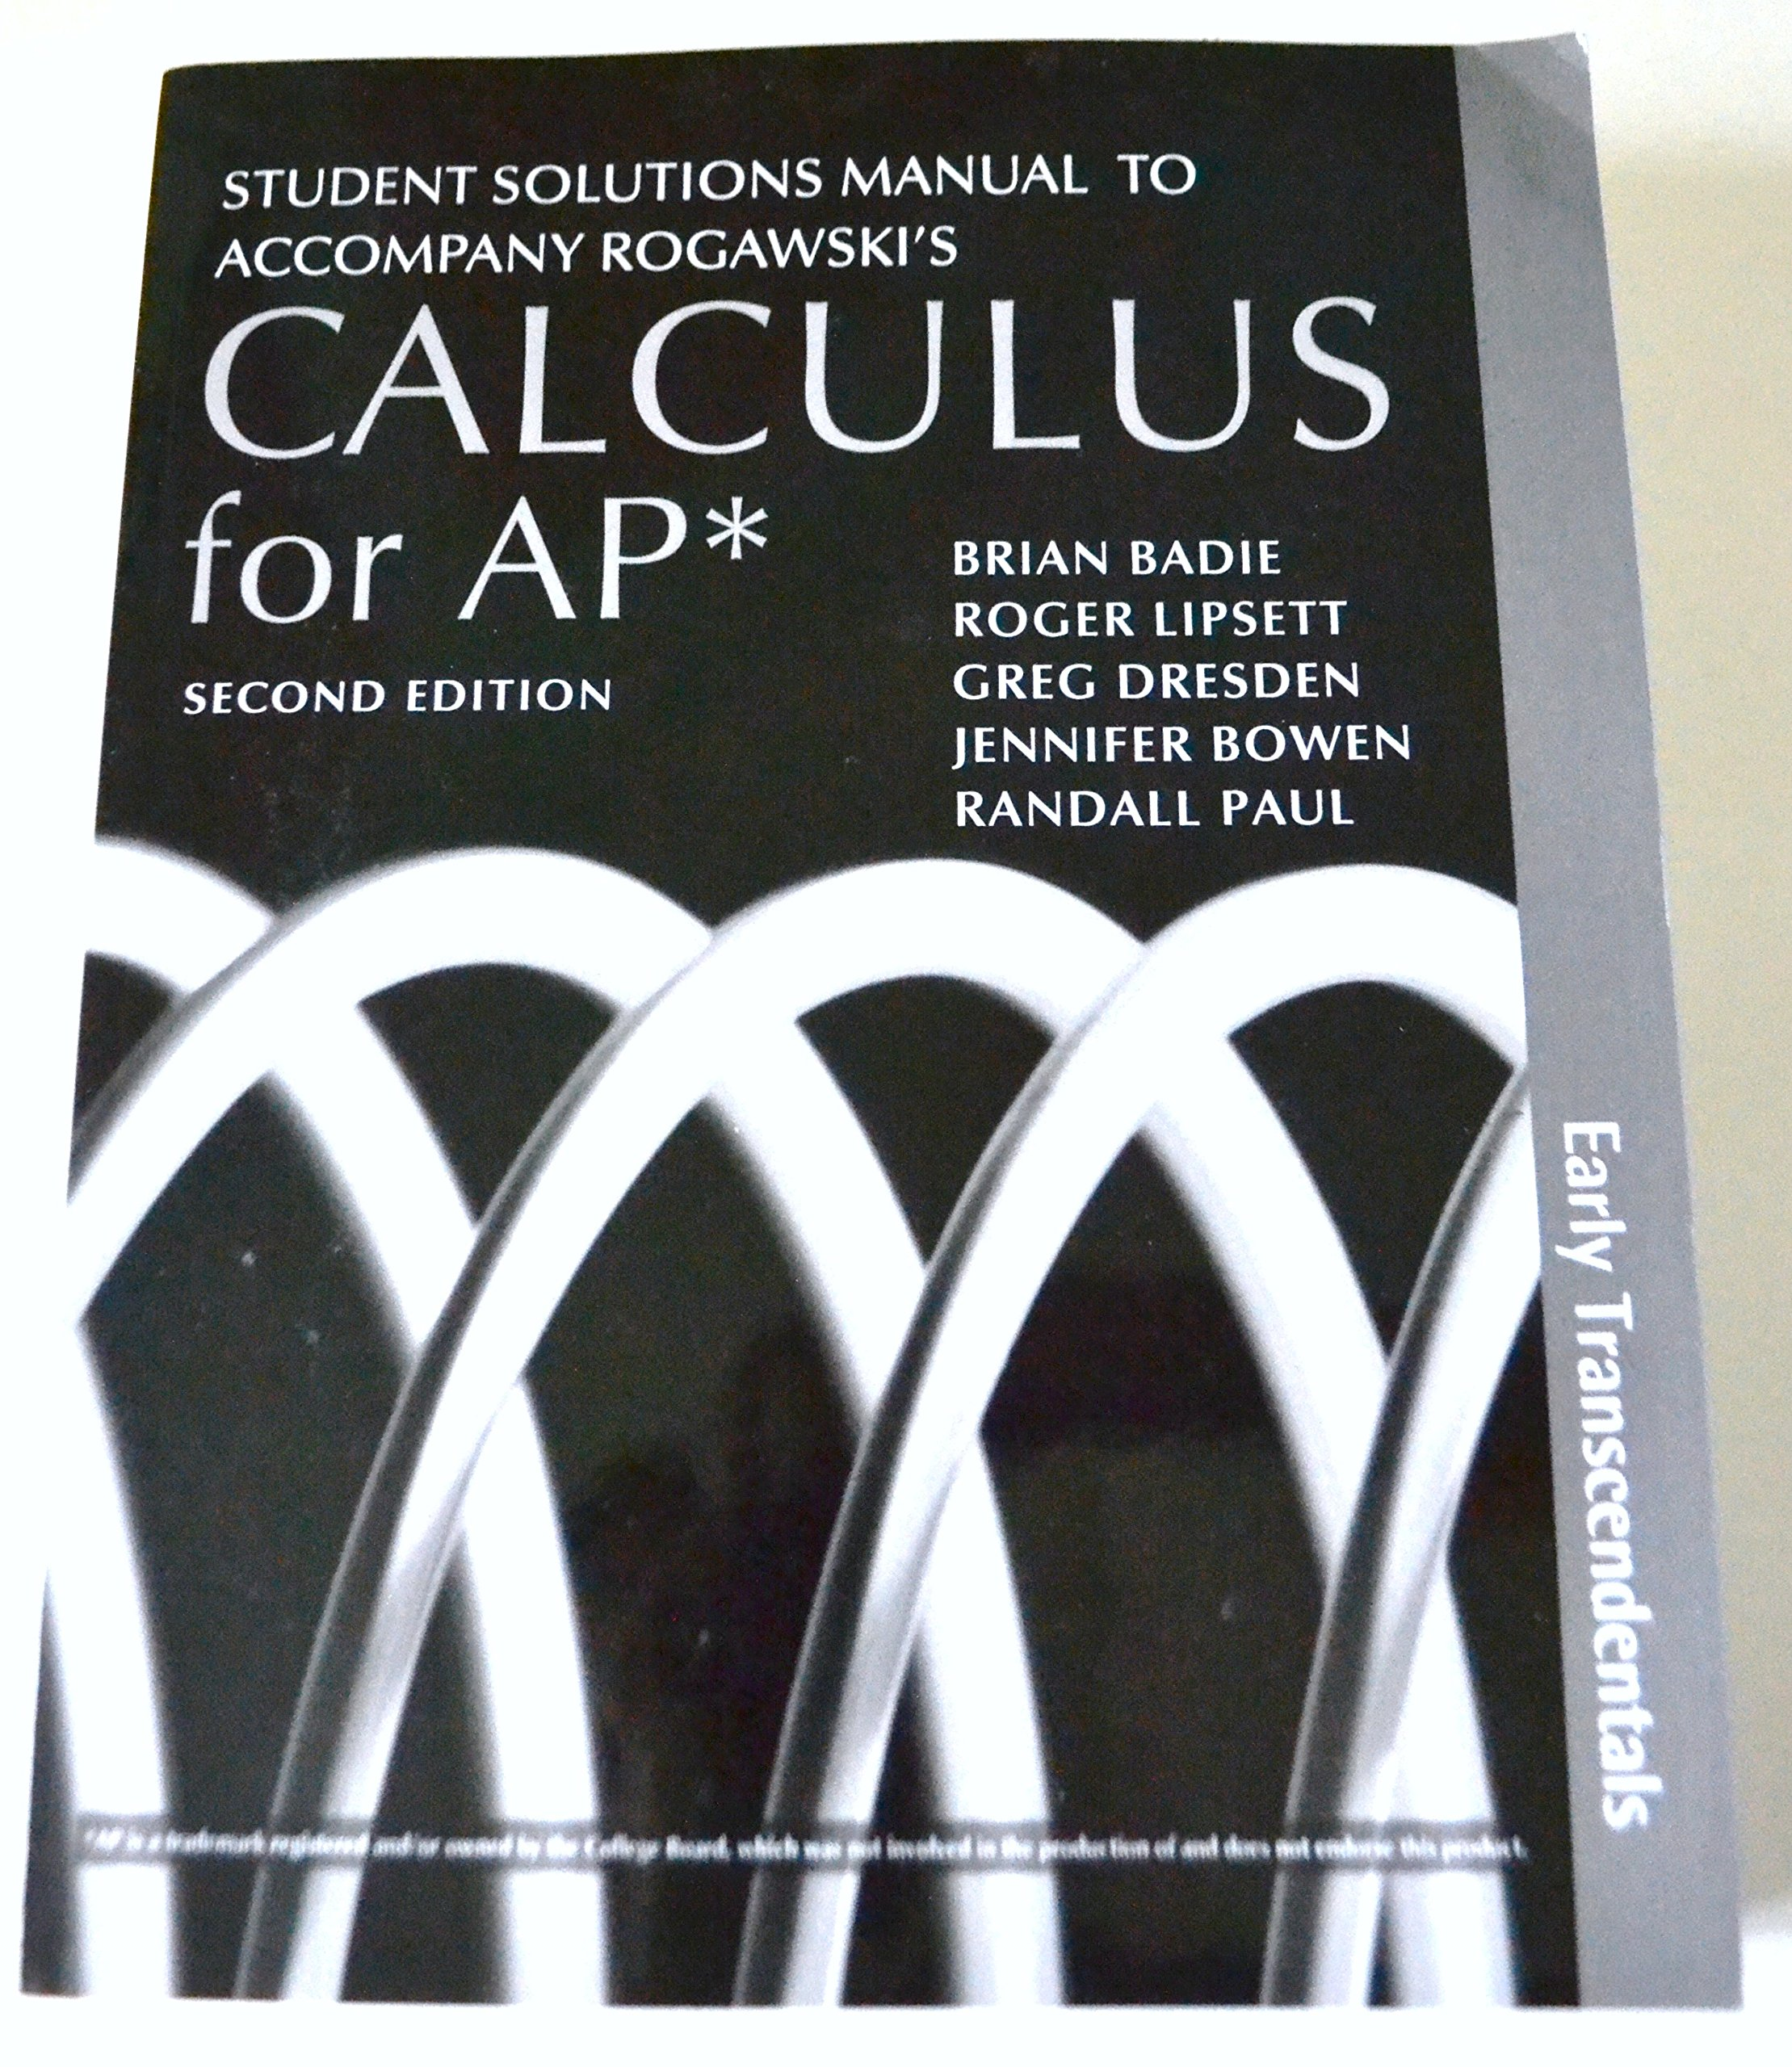 Student Solutions Manual to Accompany Rogawski's Calculus for AP - Early  Transcendentals: Brian Badie, Roger Lipsett, Greg Dresden, Jennifer Bowen,  ...